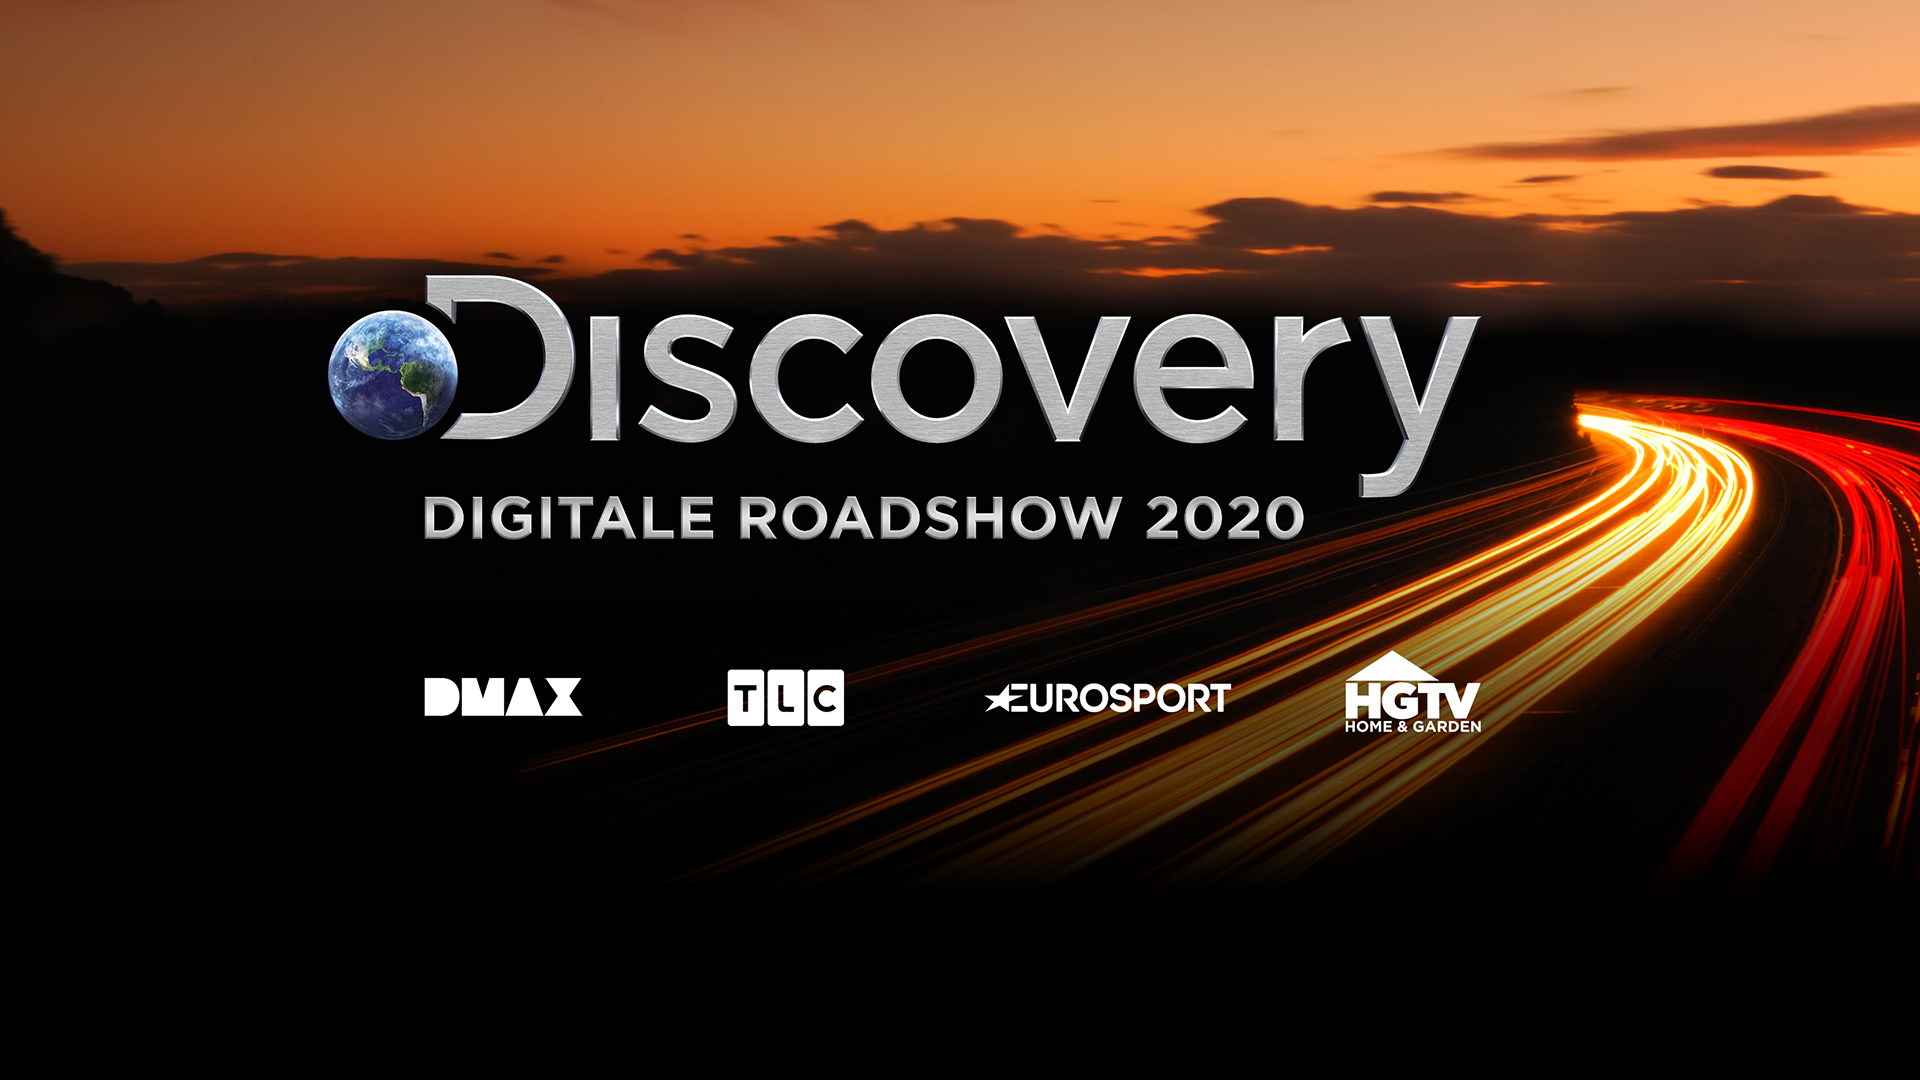 Unsere digitale Discovery Roadshow 2020